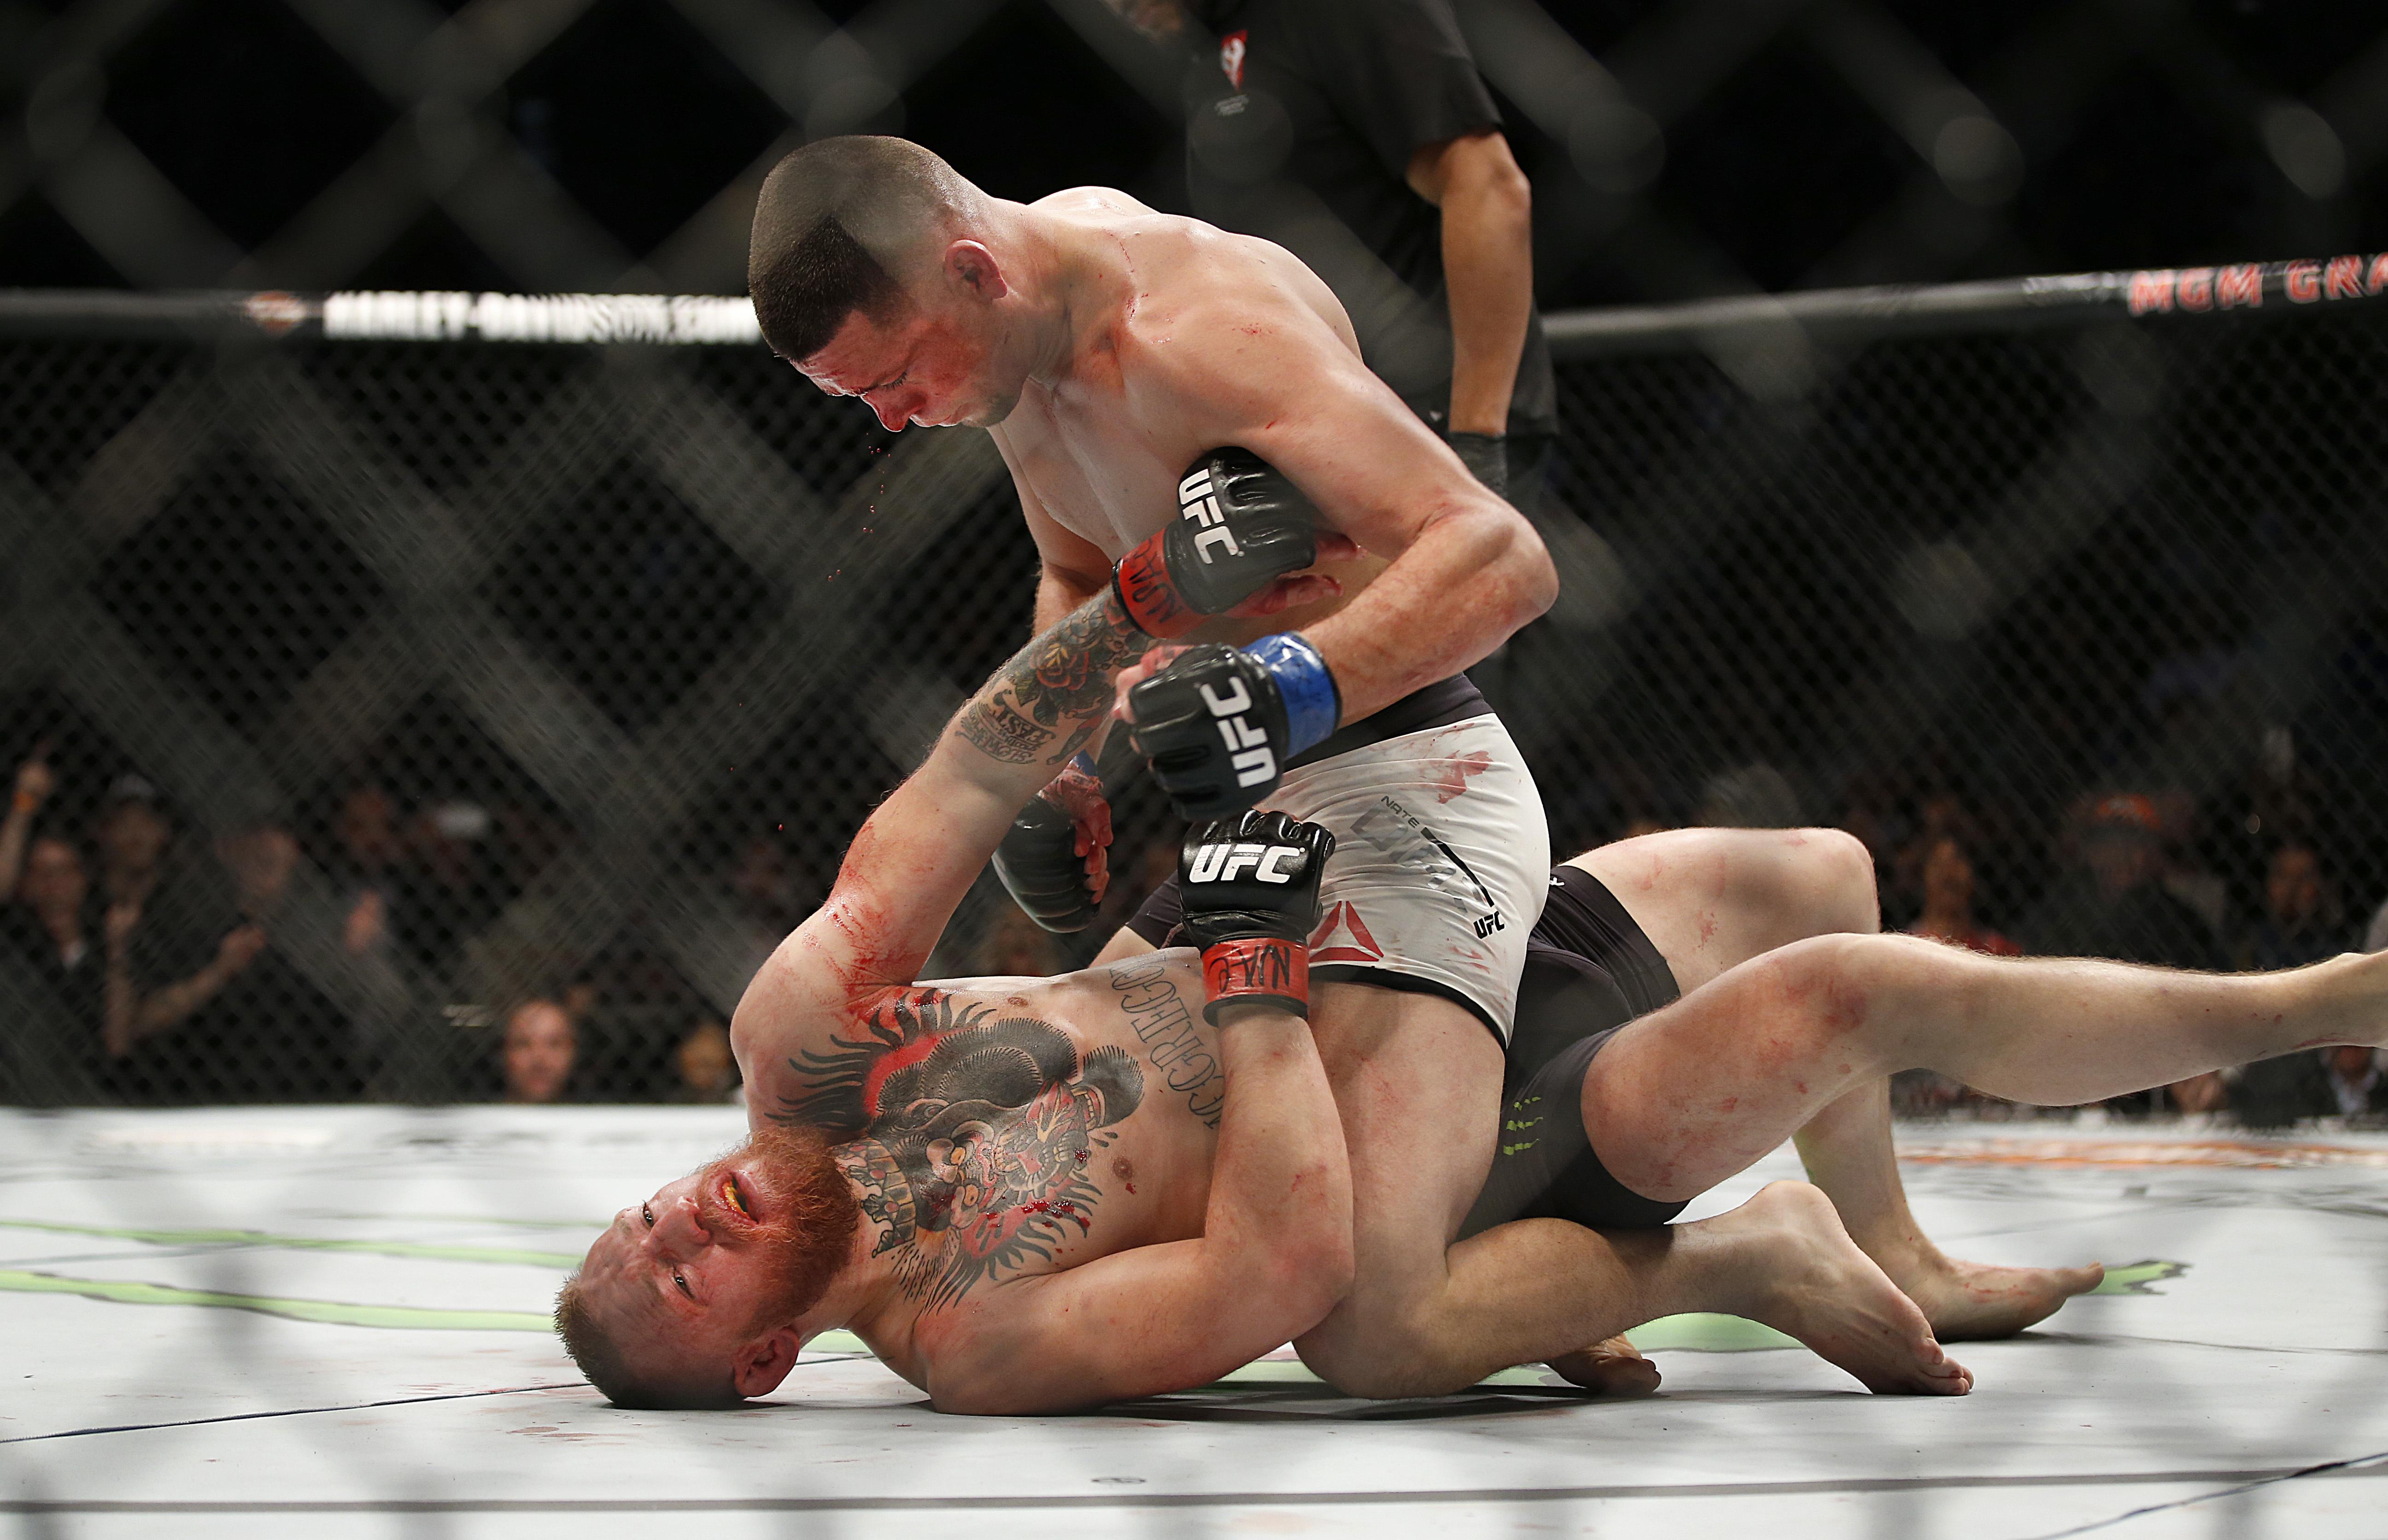 Dubliner McGregor admitted he struggled for fitness in the loss